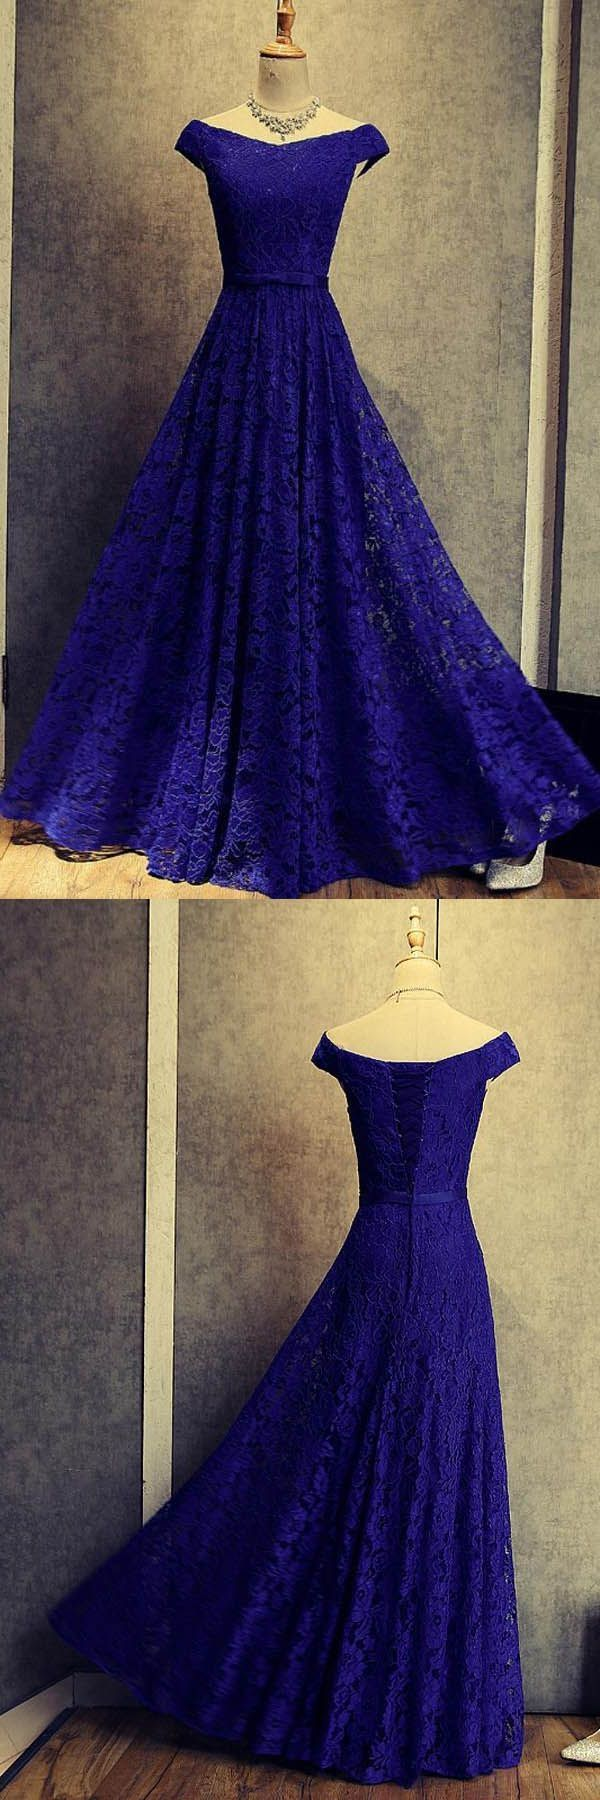 Customized substantial prom dresses royal blue floor length off